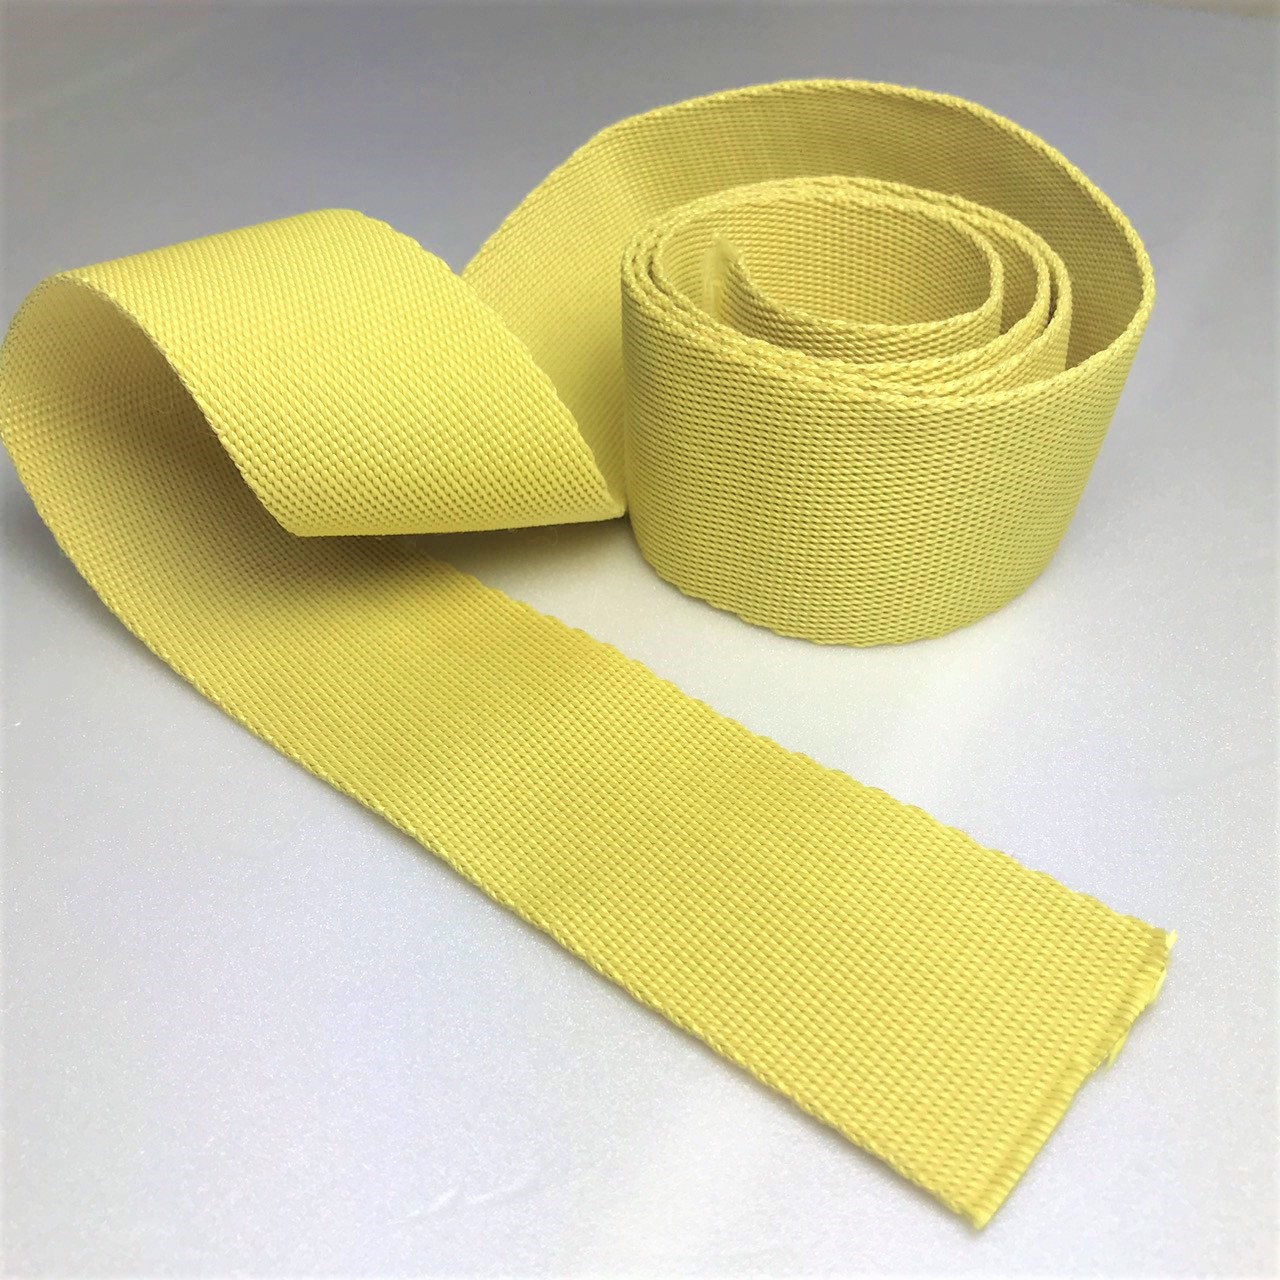 Kevlar webbing strap for DRD (Drag Rescue Device)